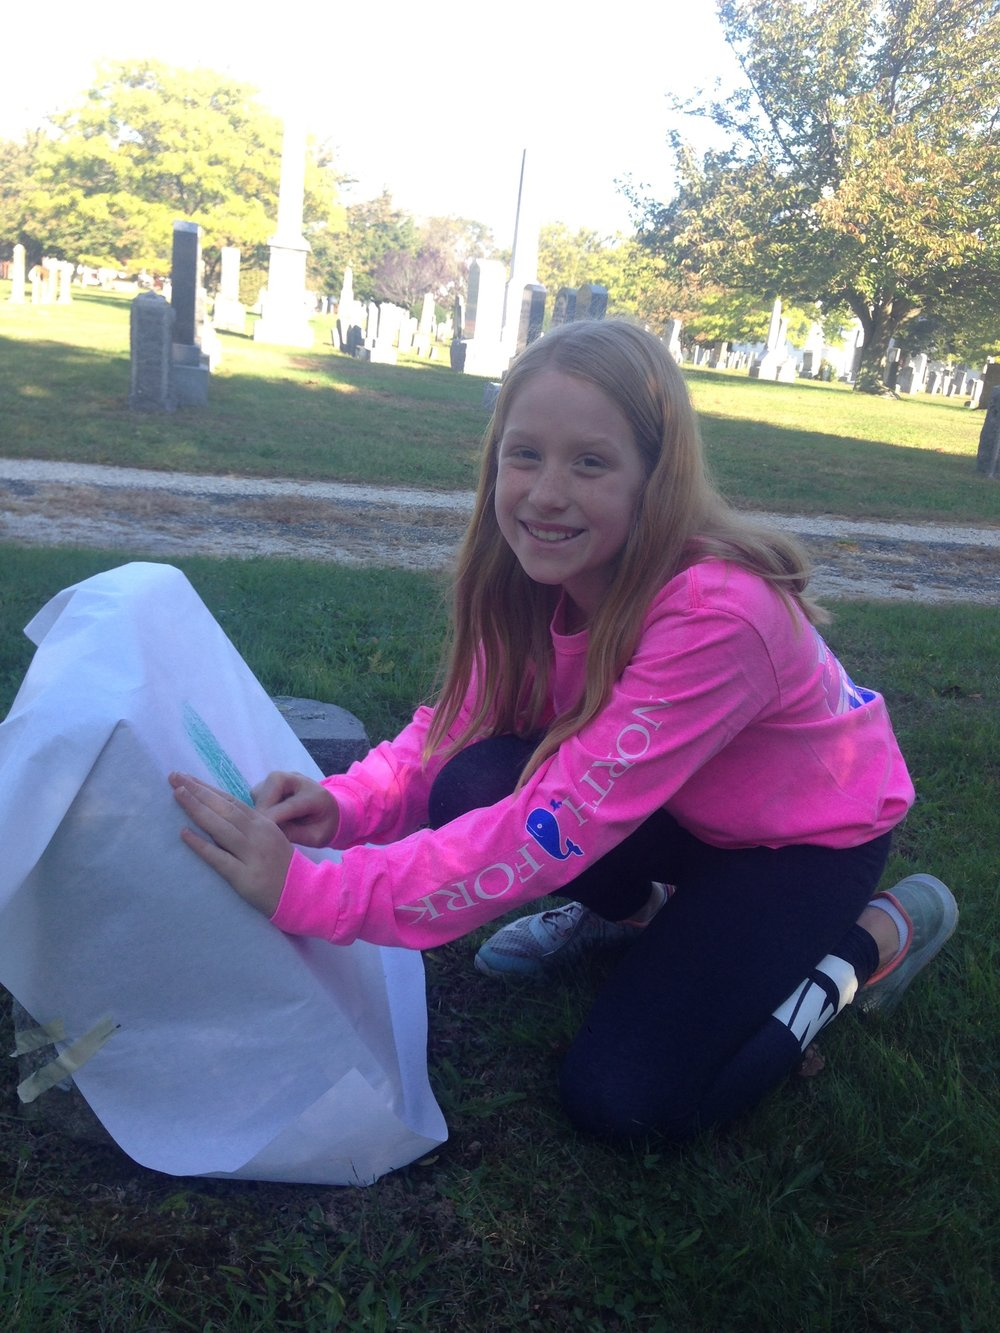 Anna was excited to find a family name of Tuthill in the cemetery